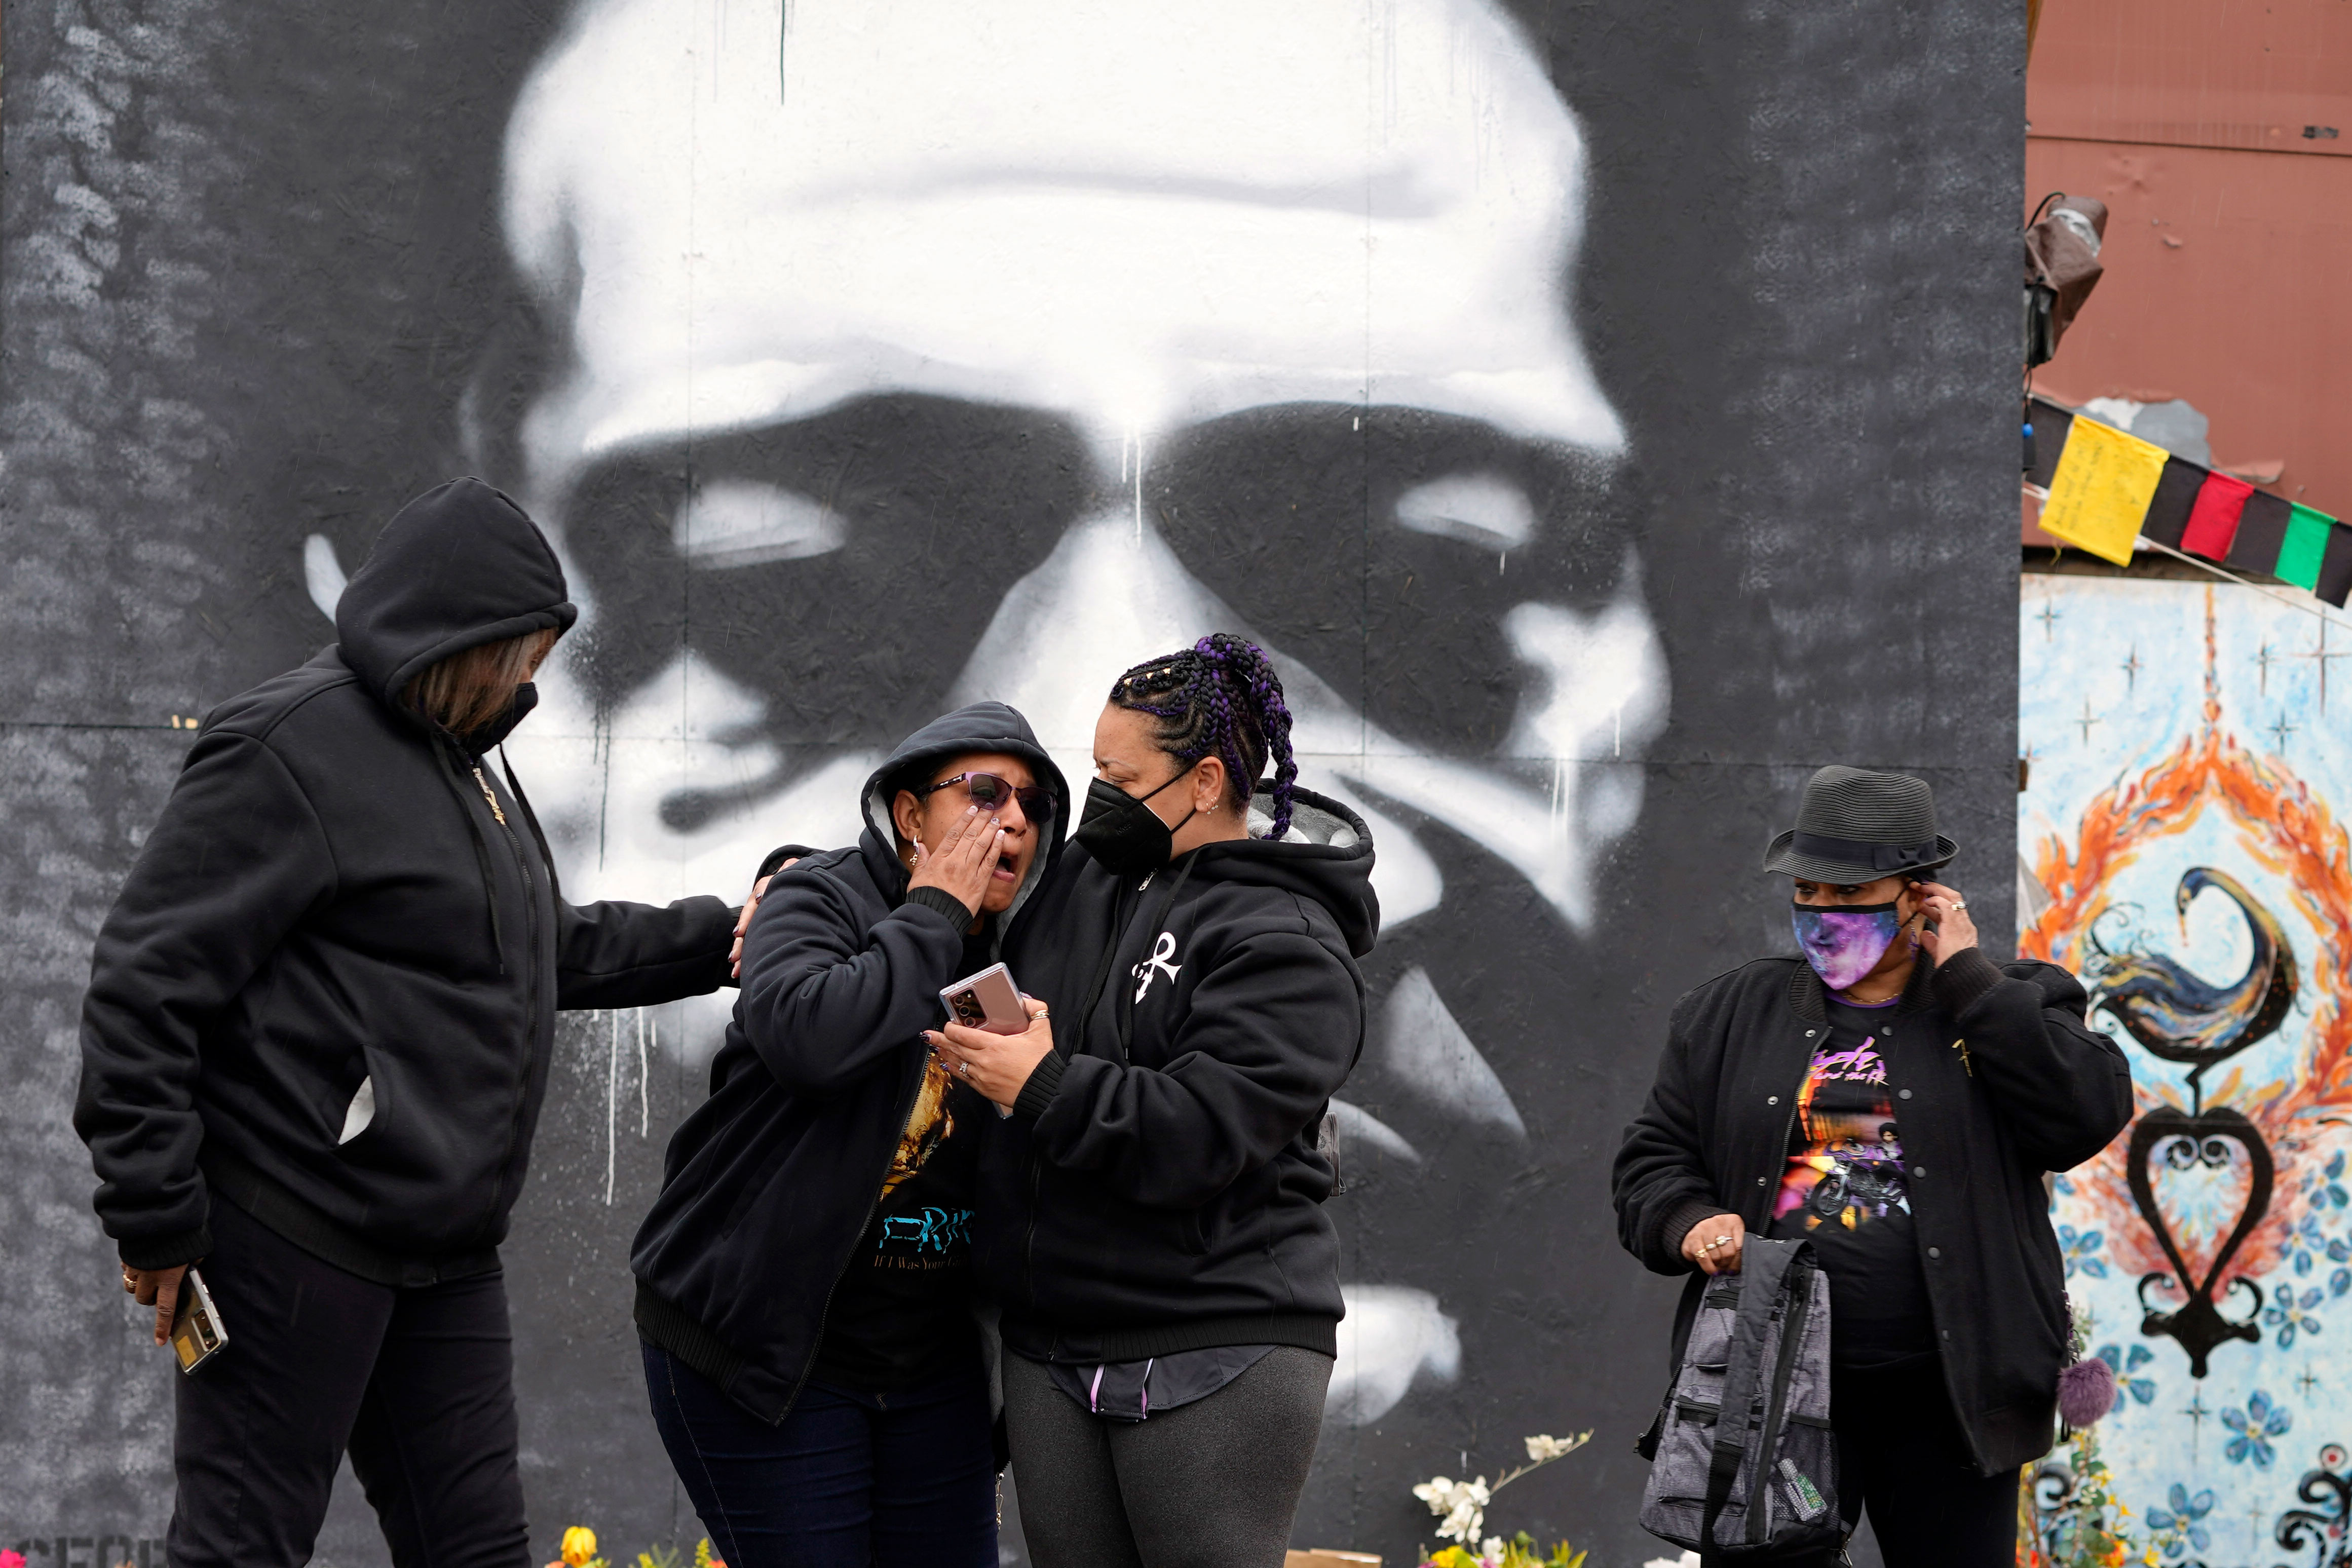 A group of women from Colorado and North Carolina react while paying respects to George Floyd at a mural at George Floyd Square, Friday, April 23, 2021, in Minneapolis. (AP Photo/Julio Cortez)